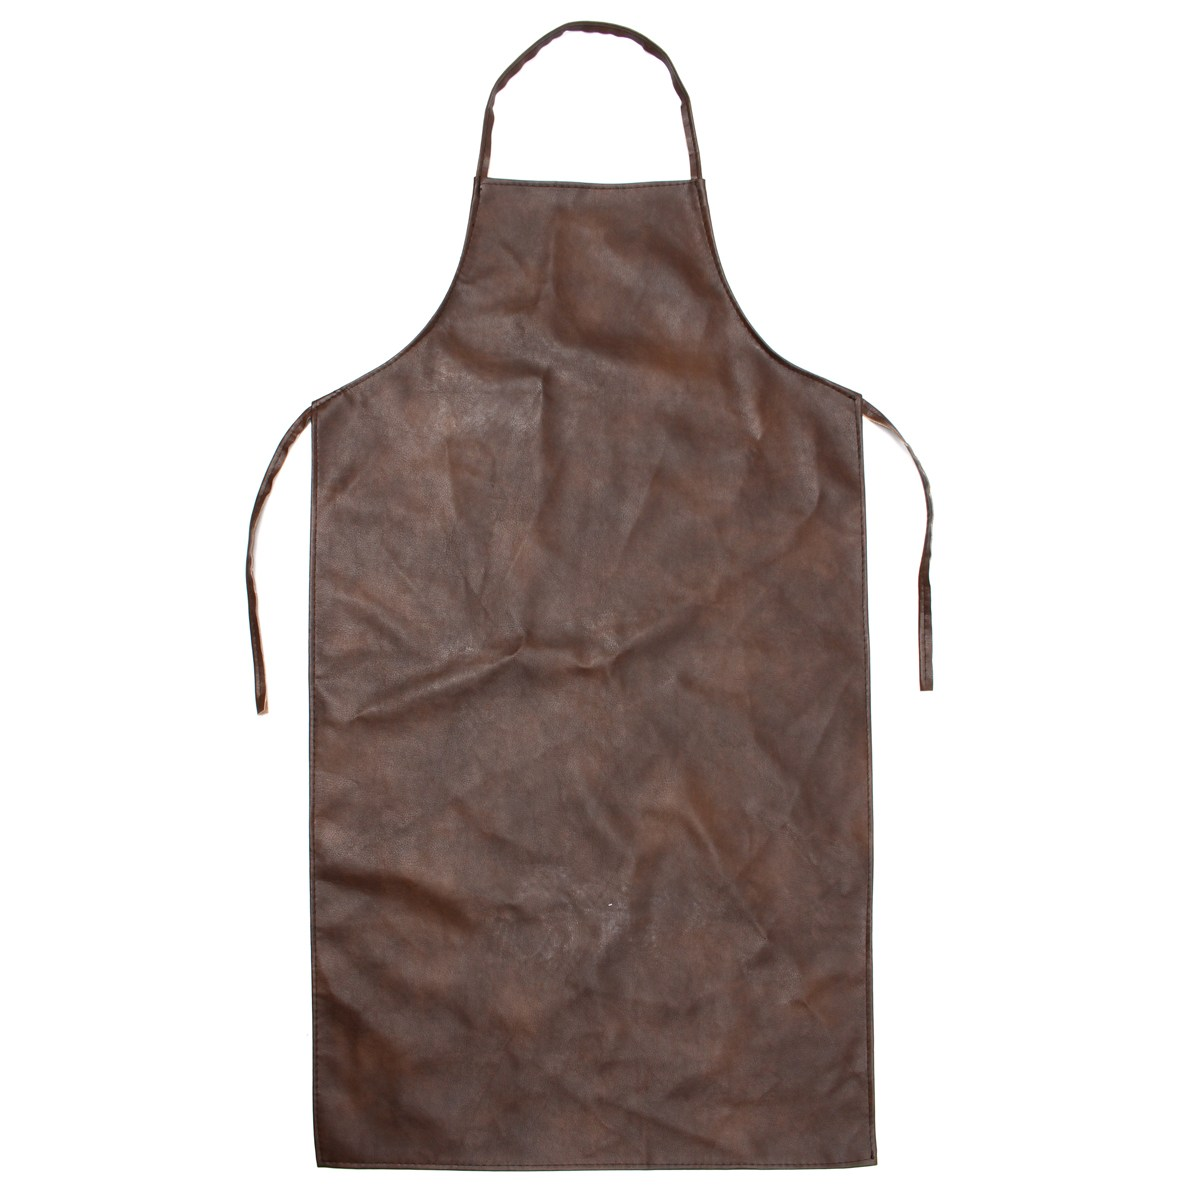 Safurance Leather Equipment Apron Waterproof Washable Heat Insulation Kitchen Workplace Safety Clothing new safurance welders dual leather